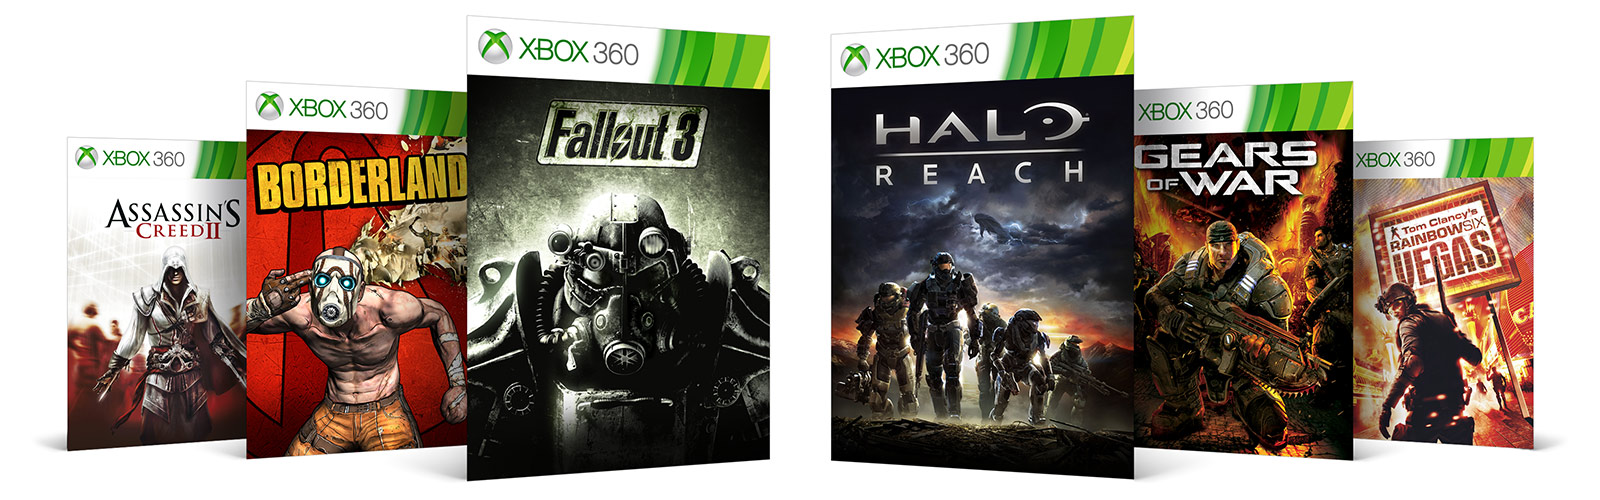 Xbox 360 games lined up behind each other, diagonally to the left and right